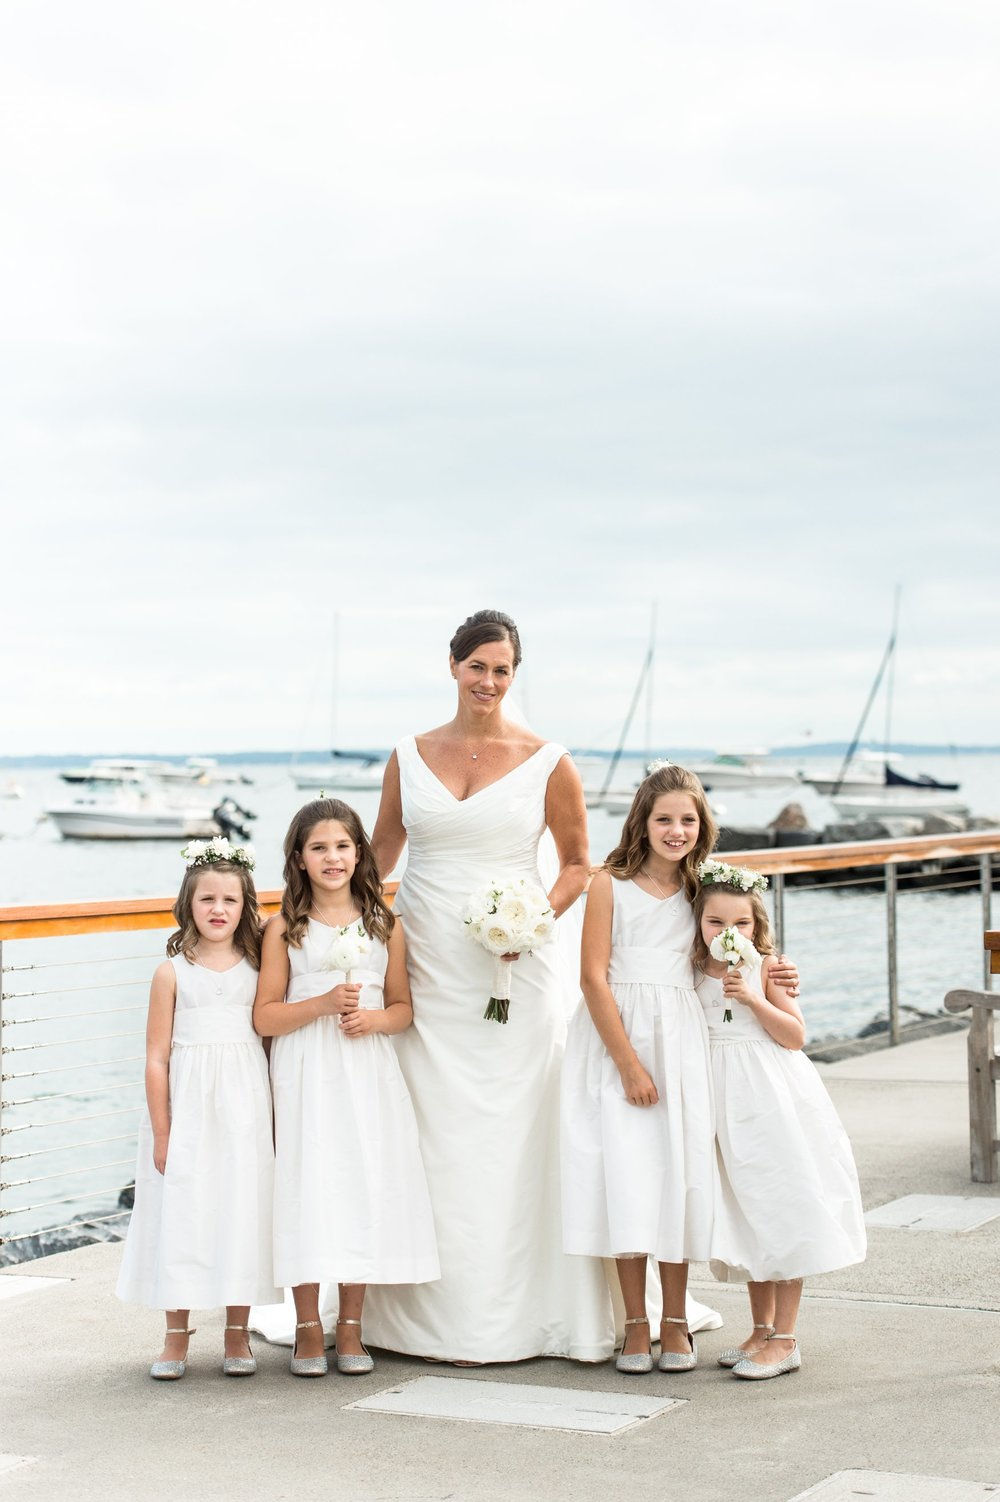 Bride in Augusta Jones dress with four little flower girls in white jcrew dresses pose on docks at Belle Haven Club for fall nautical inspired wedding